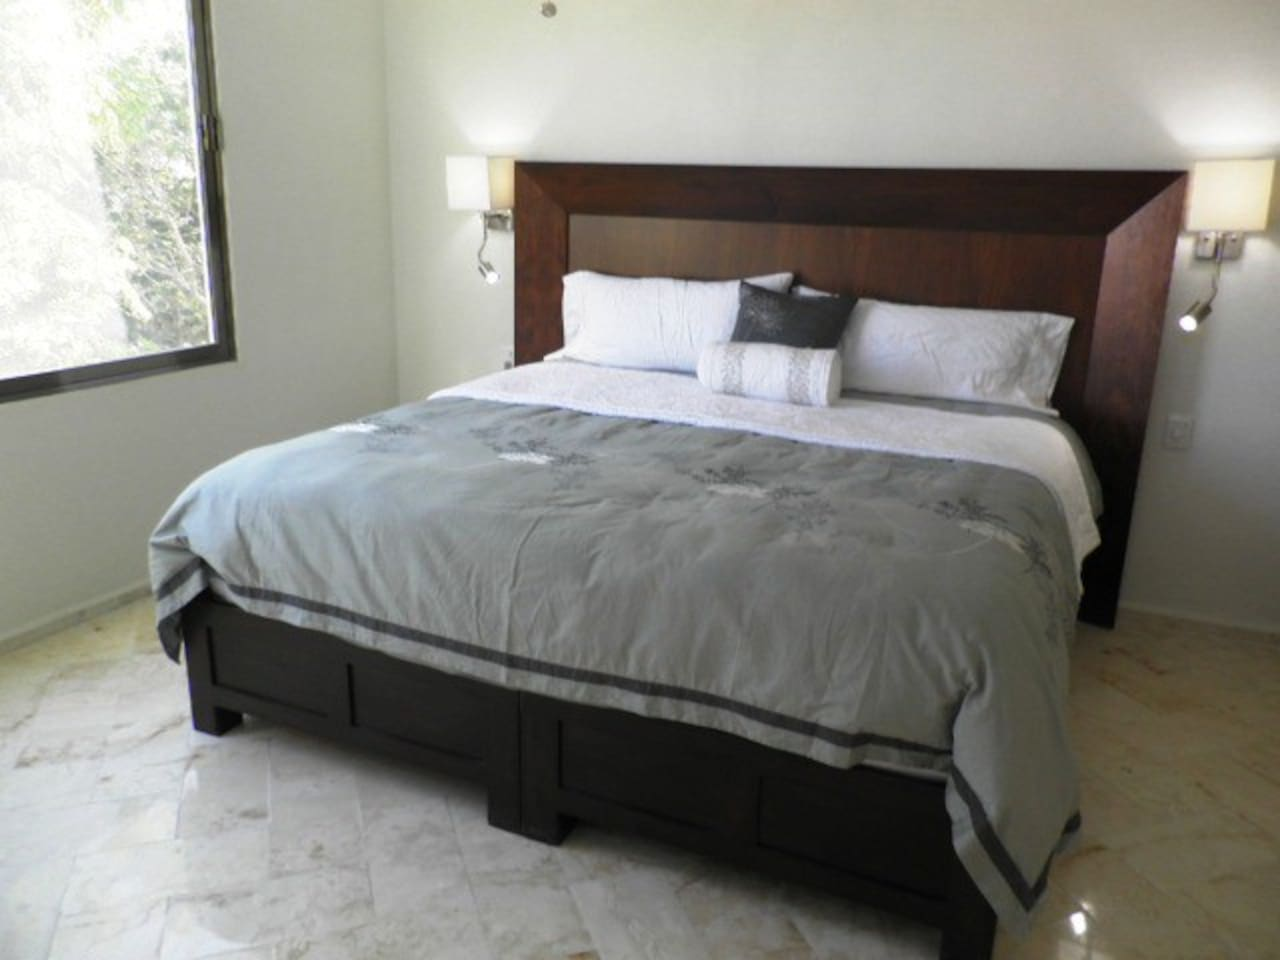 The 4th floor master suite features a king-size tzalam wood headboard and 1,000 thread count sheets.